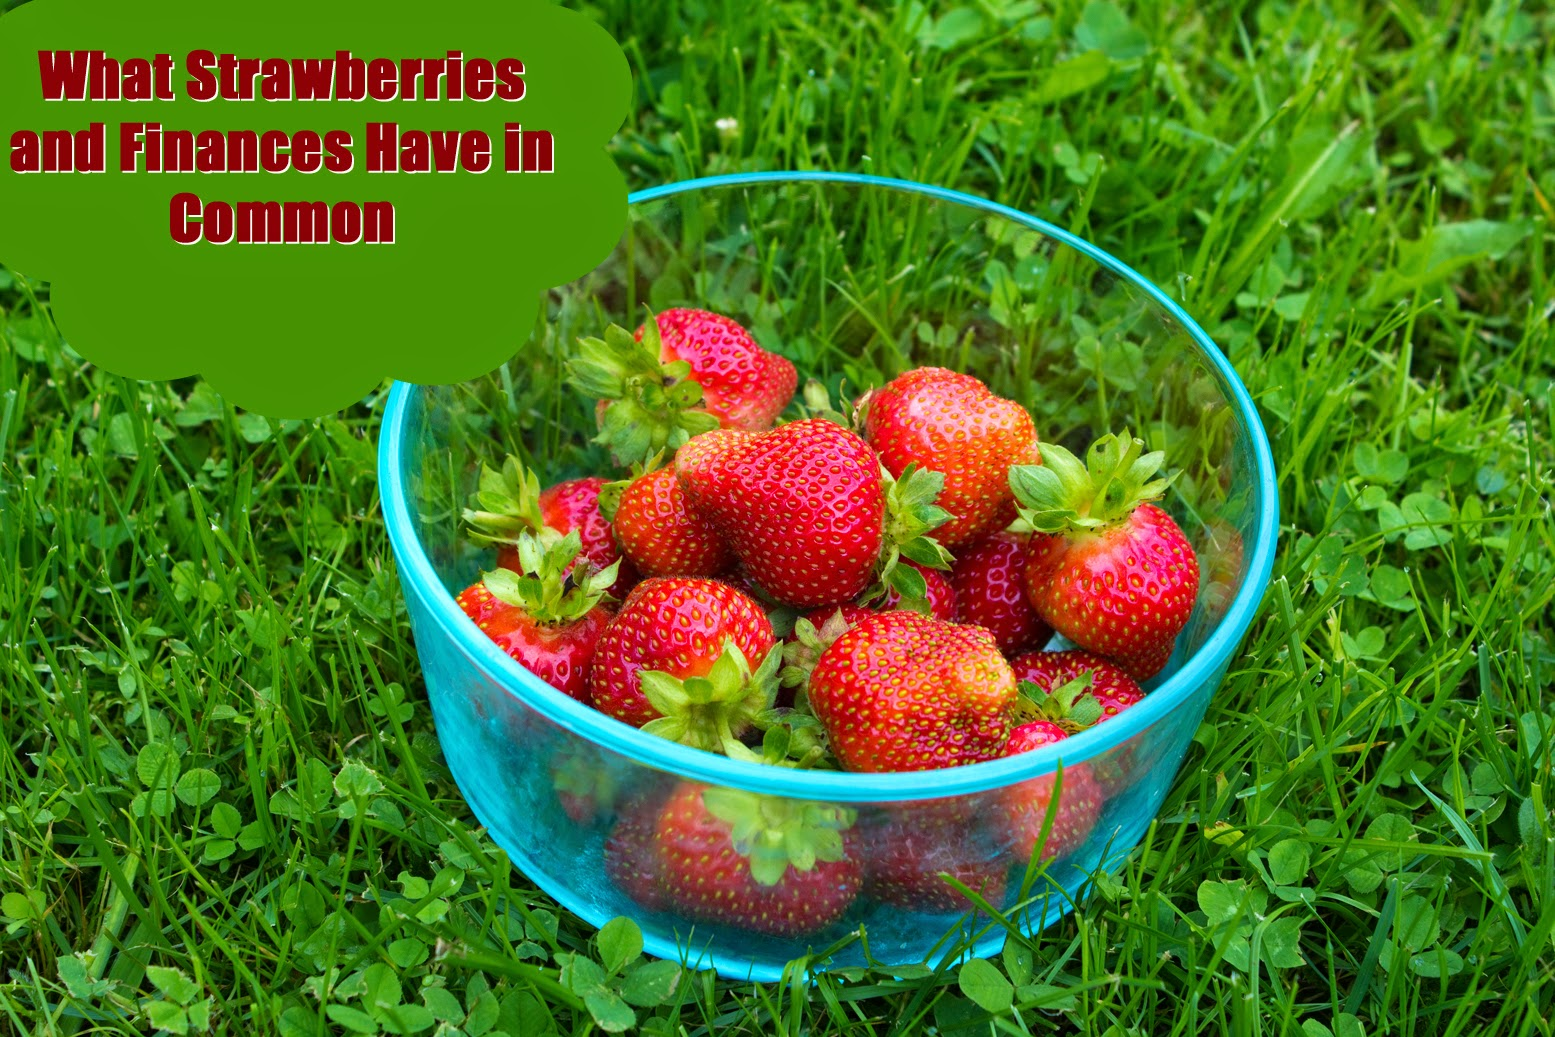 What Strawberries And Finances Have In Common